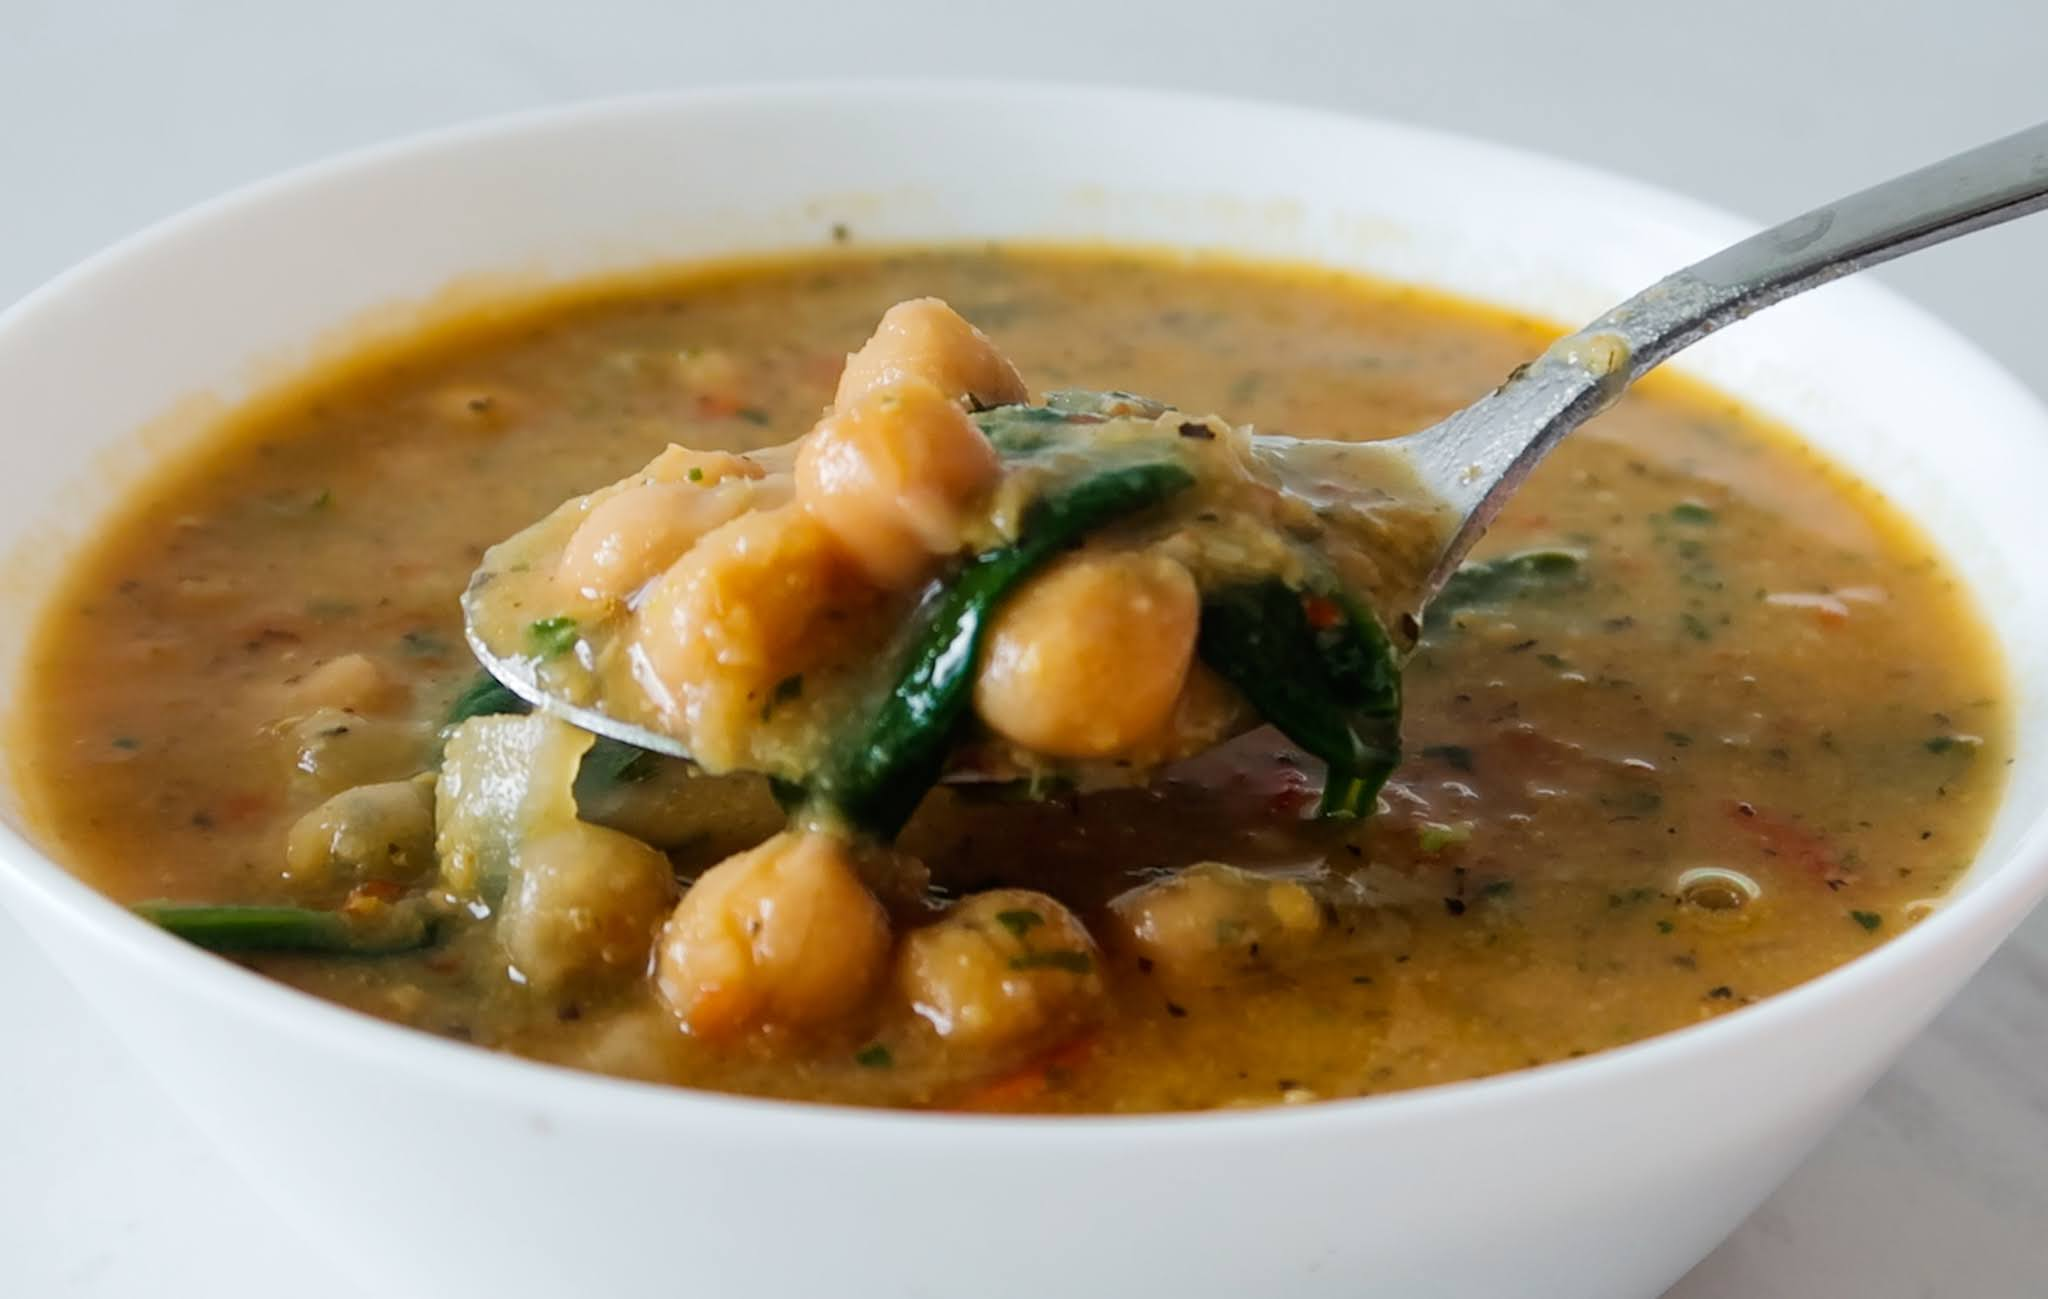 20-minute vegan chickpea soup recipe! Add this tasty and easy soup recipe to your weekly meal plan for dinner or lunch! Quick, healthy, warm and delicious!